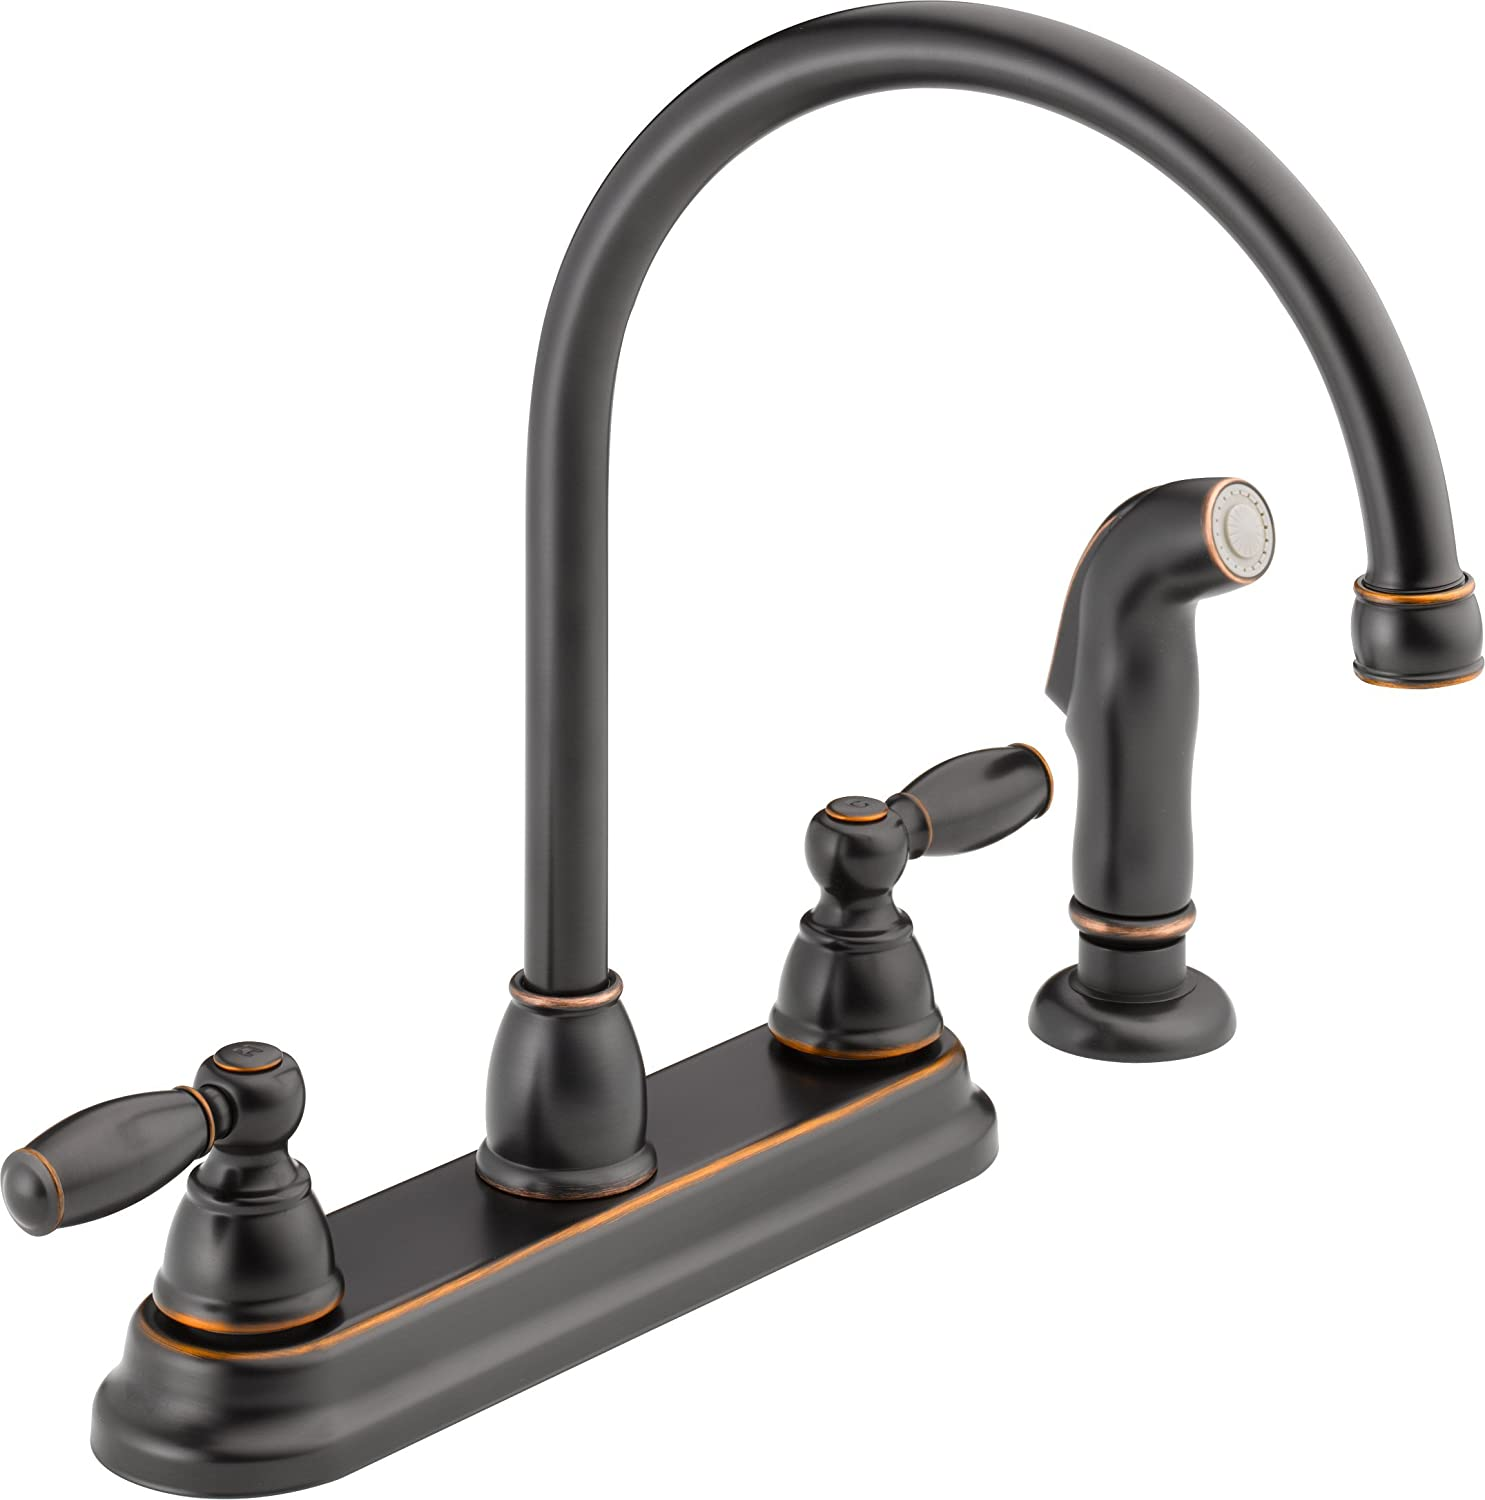 Peerless P LF OB Apex Two Handle Kitchen Faucet with Spray